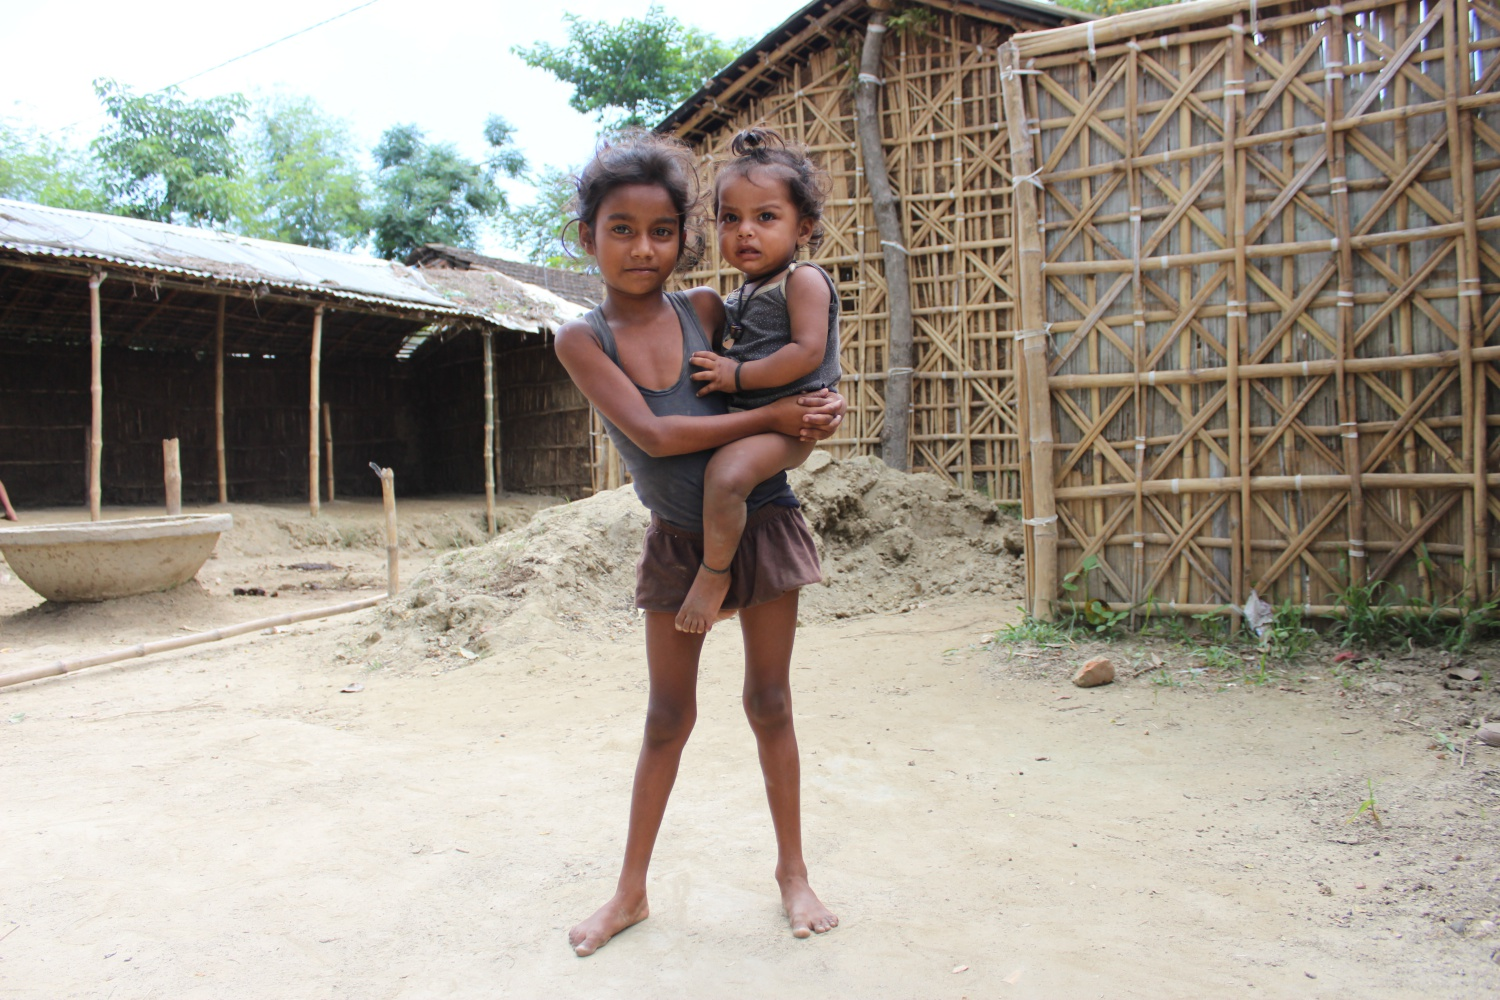 malnutrition in children essay High malnutrition levels lead to development issues and an increase in poverty in  regions like the philippines according to the food and.